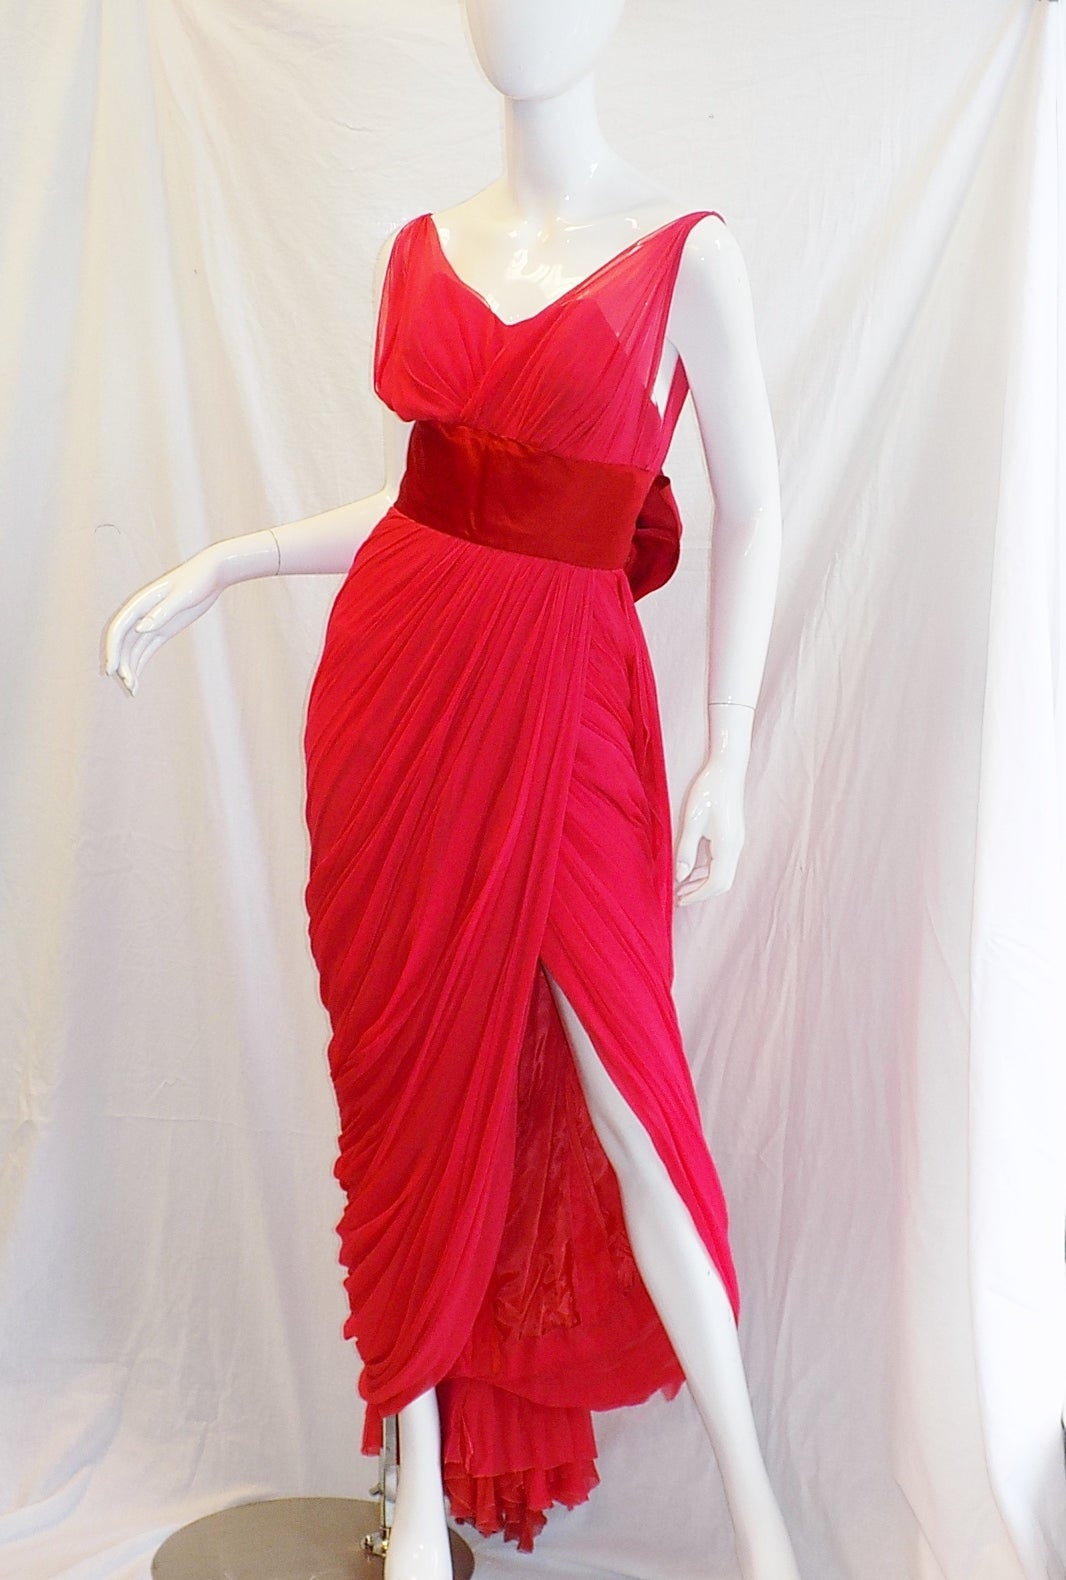 Iconic Jean Dessès Red draped gown with Fox fur stole 1950's 4